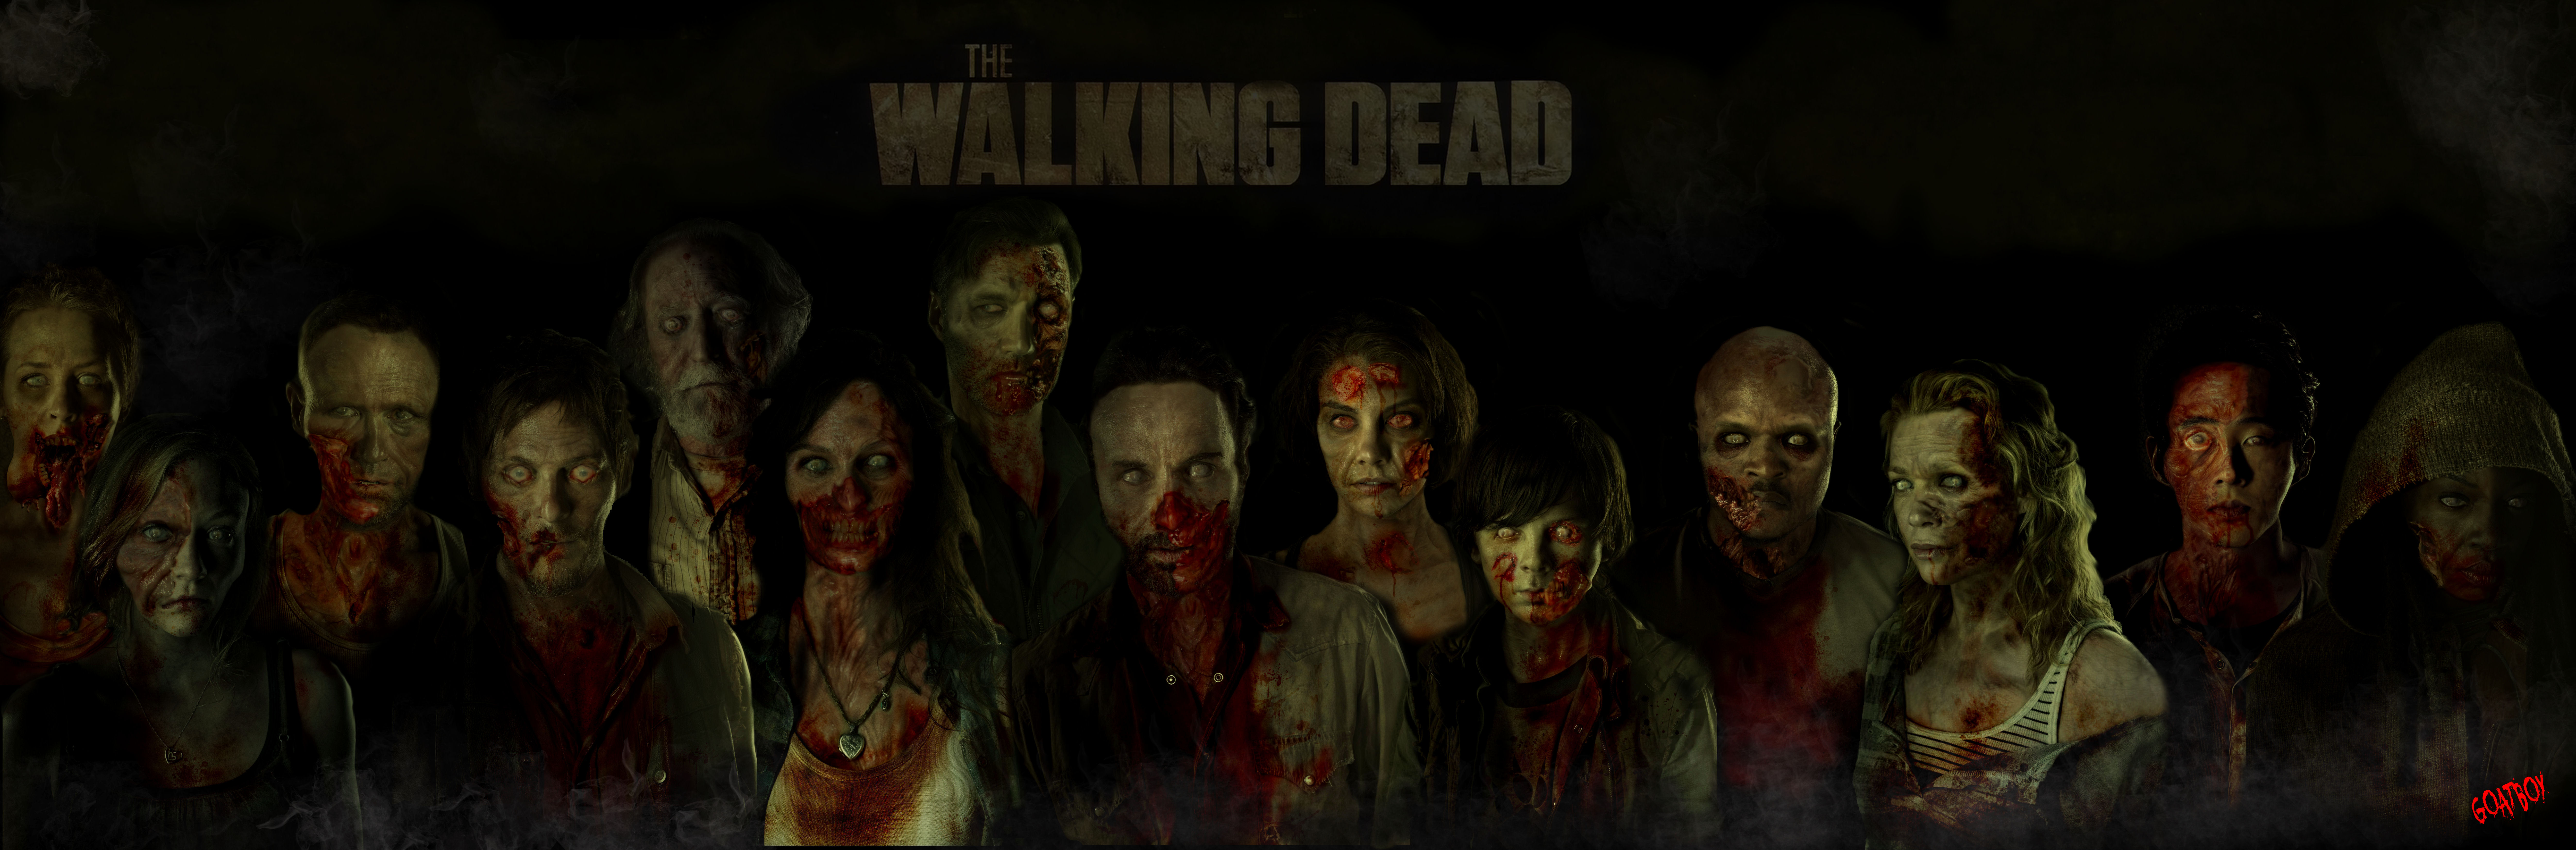 RSS feed Report content The Walking Dead   Zombie Cast view original 10000x3299